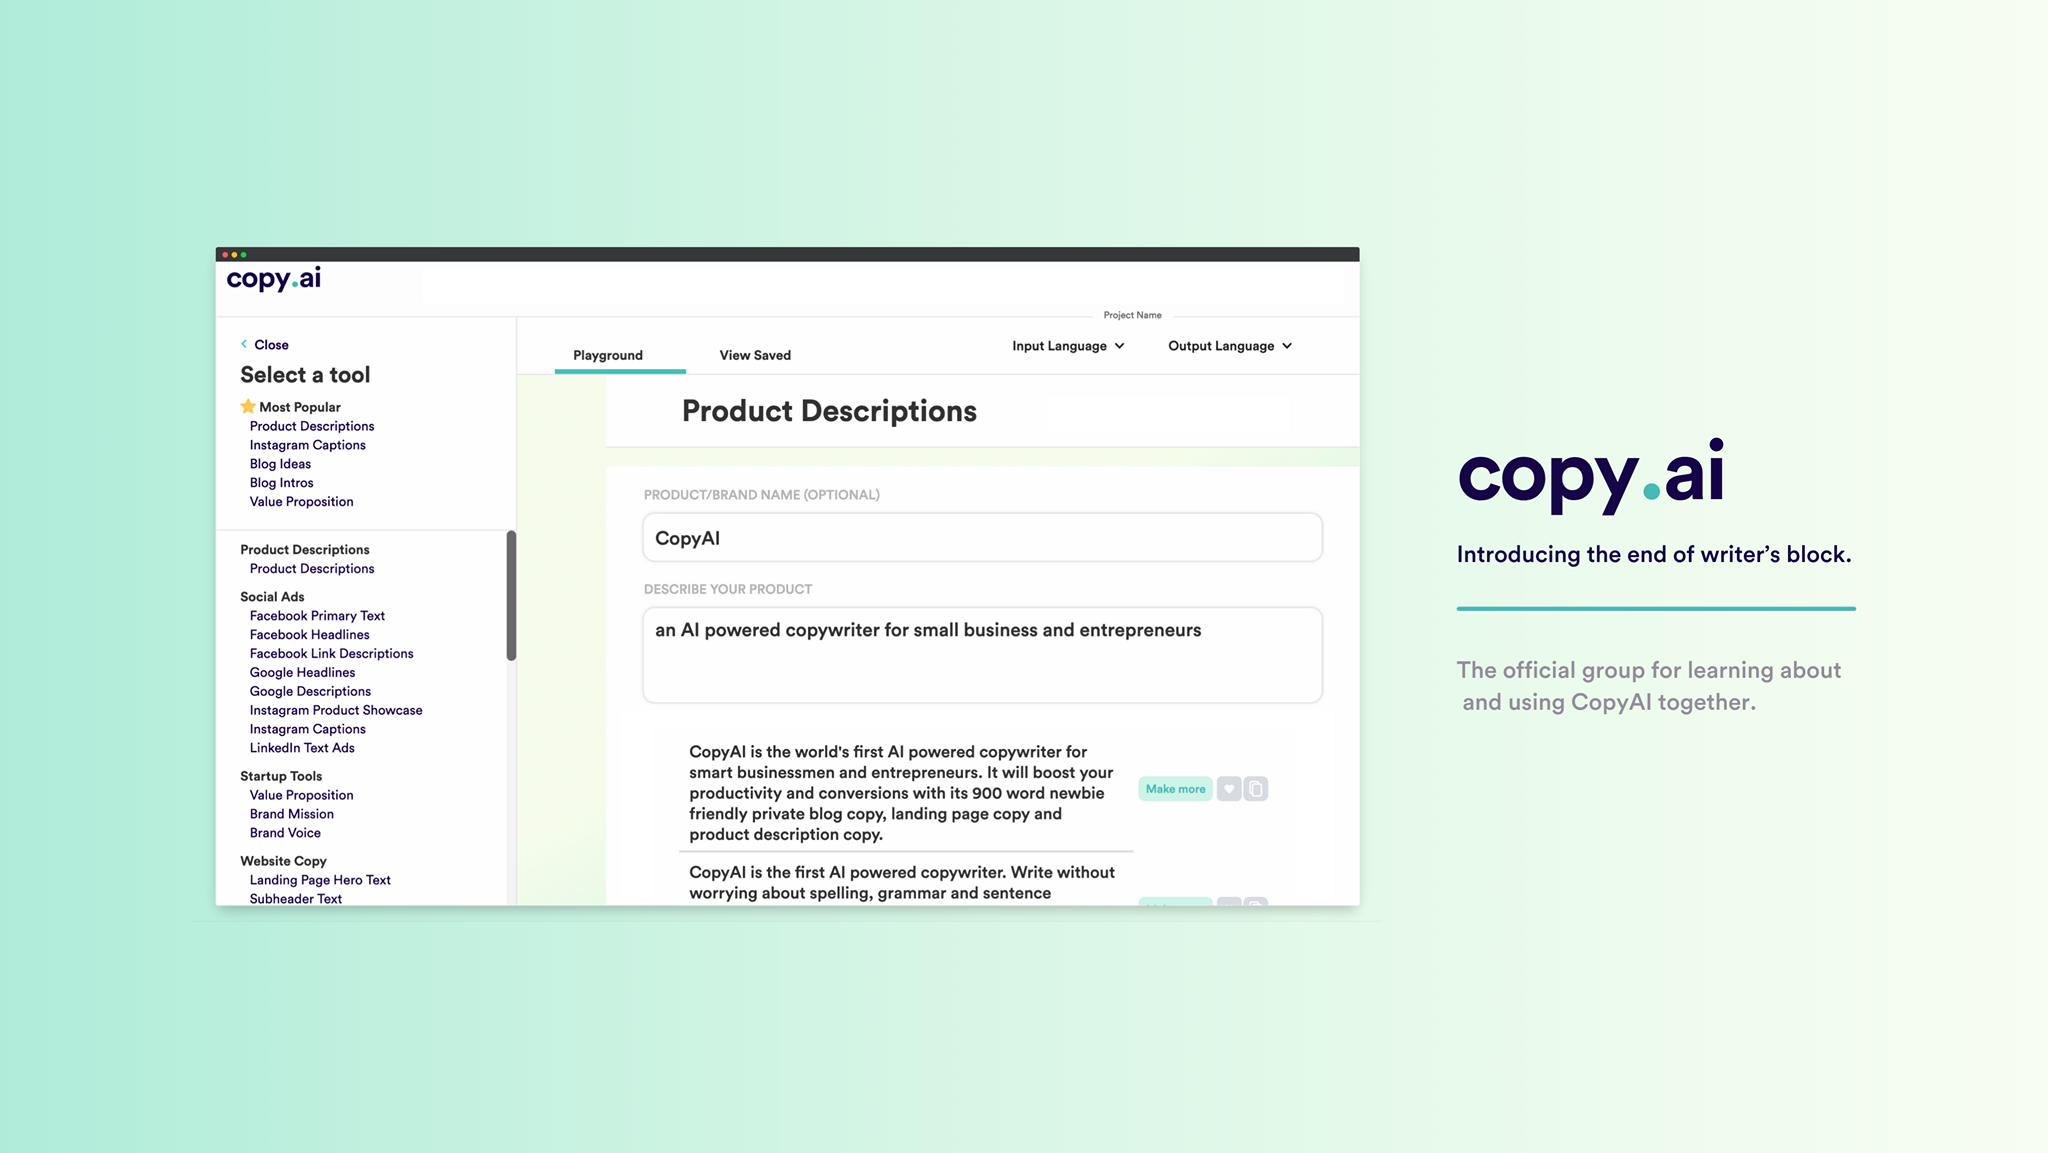 Open the CopyAI app to get started with social media content